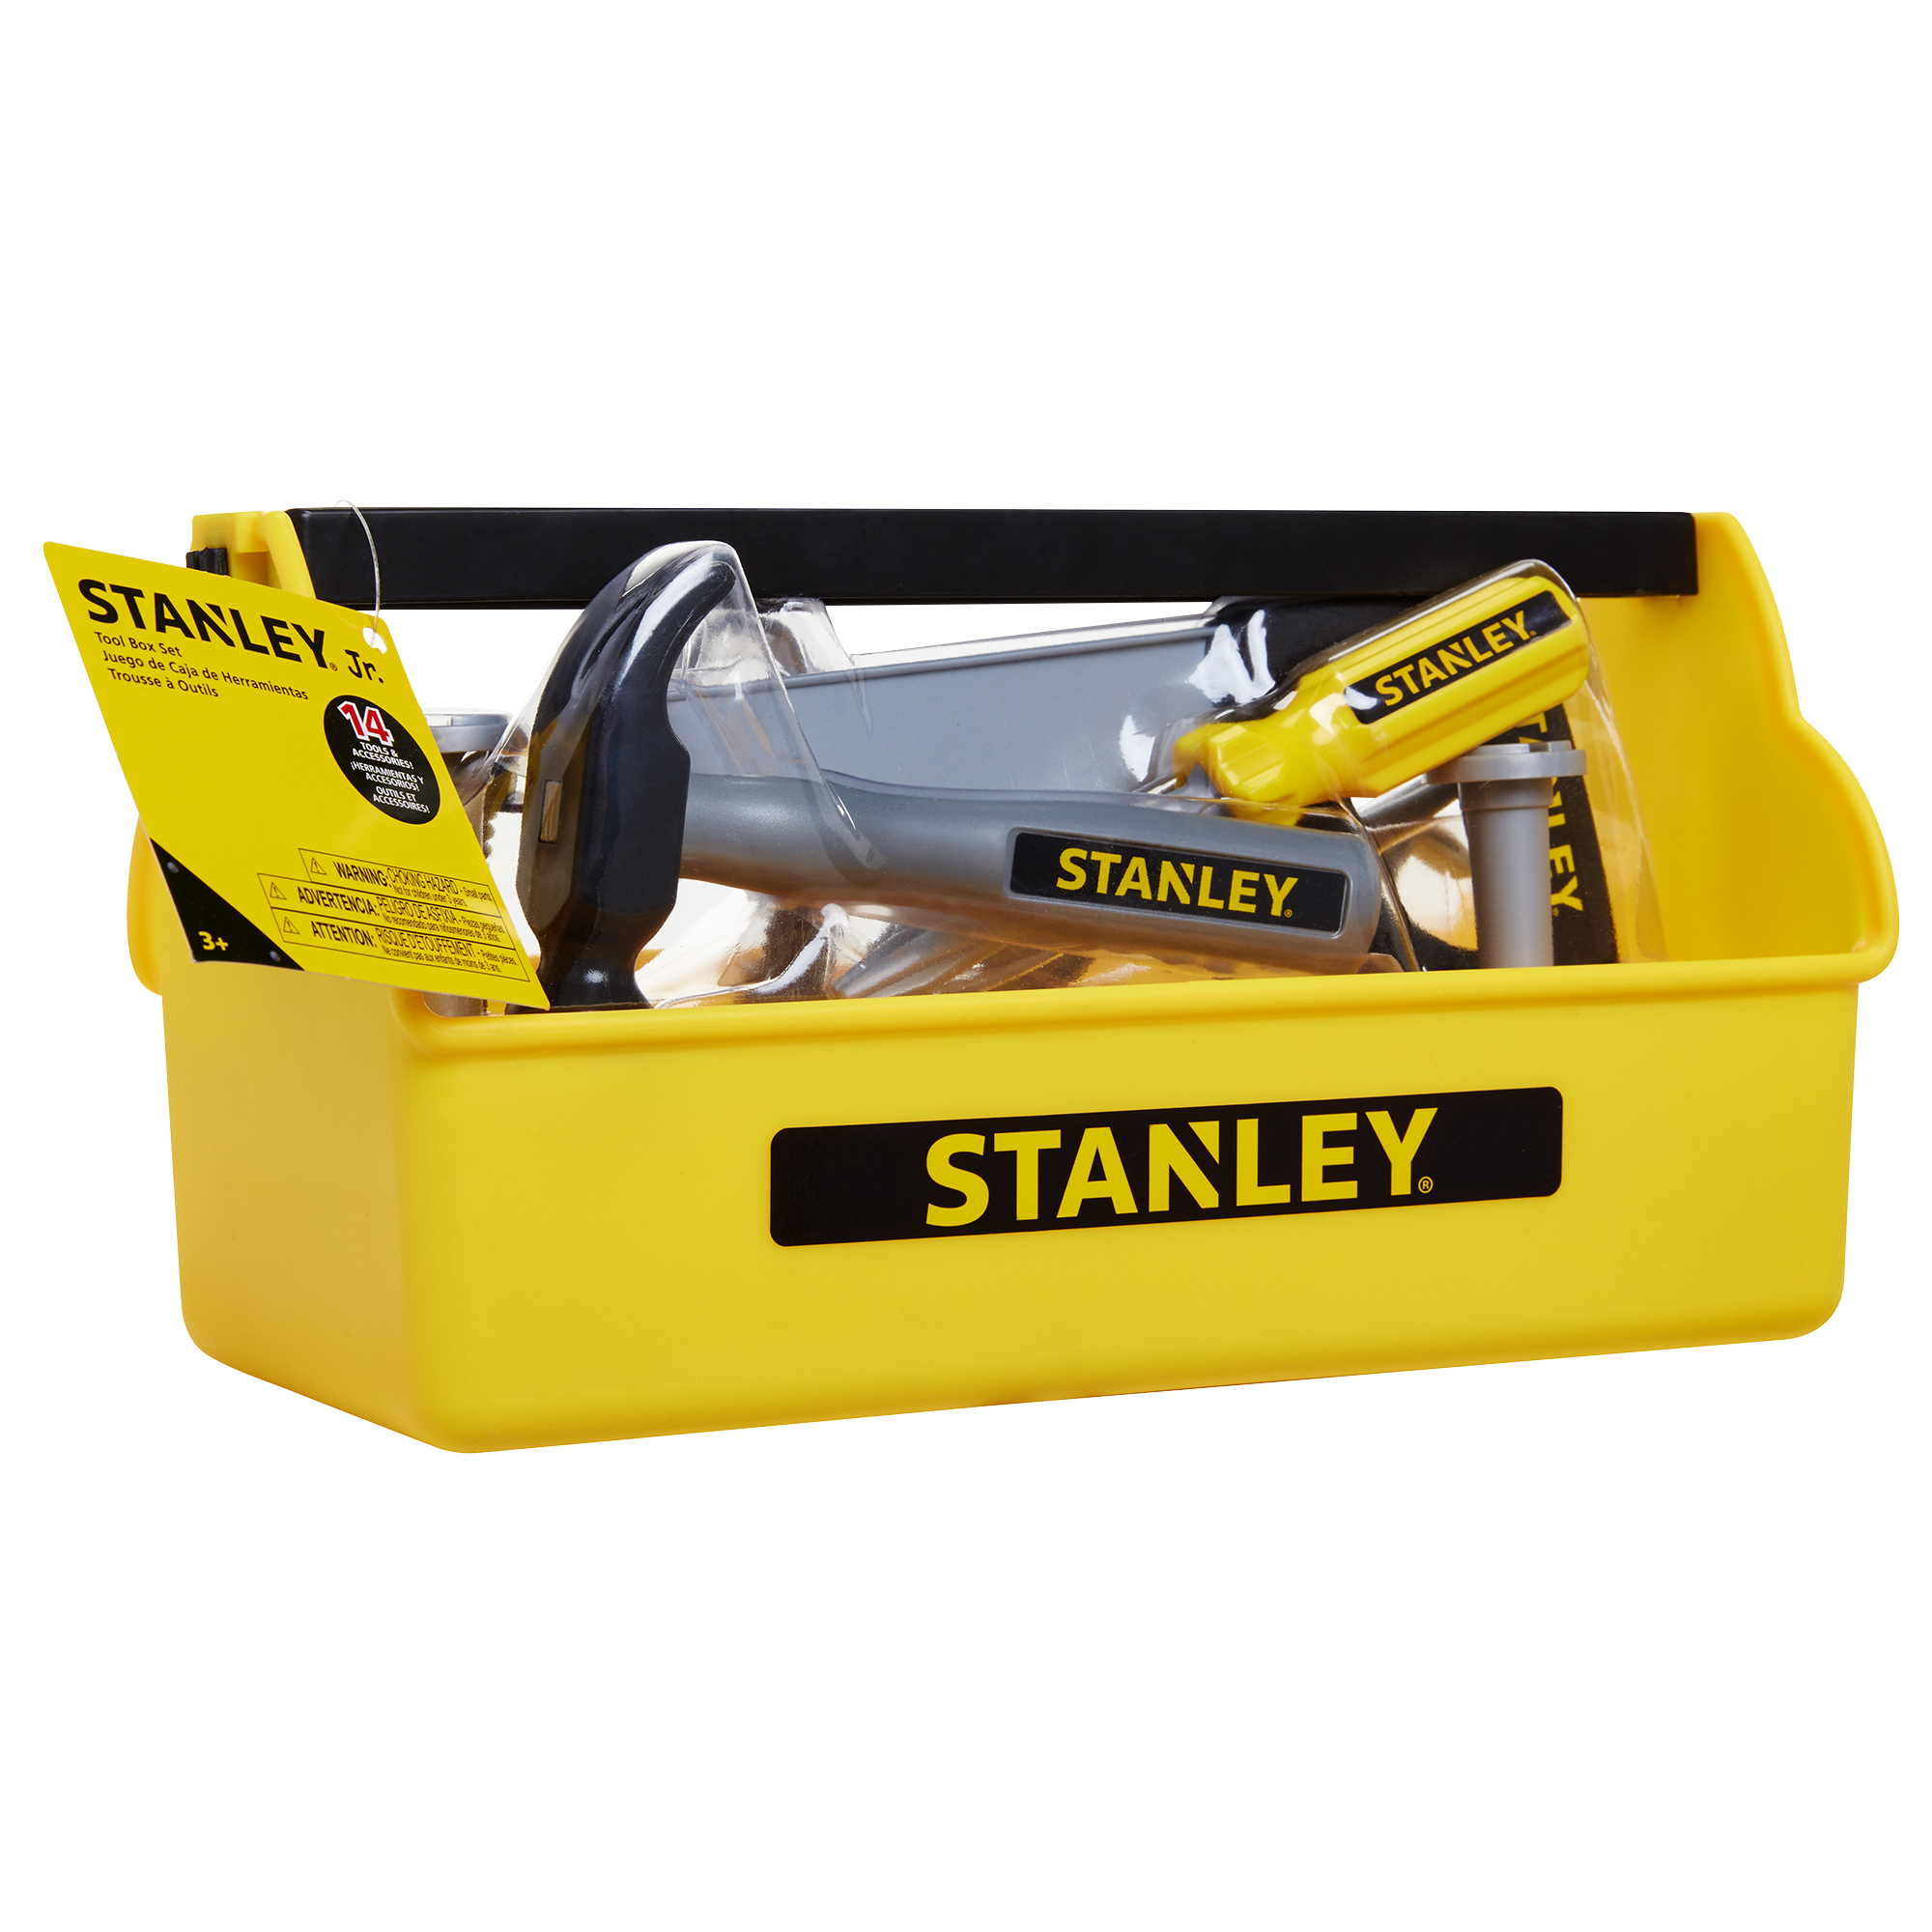 Stanley Jr. Tool Box